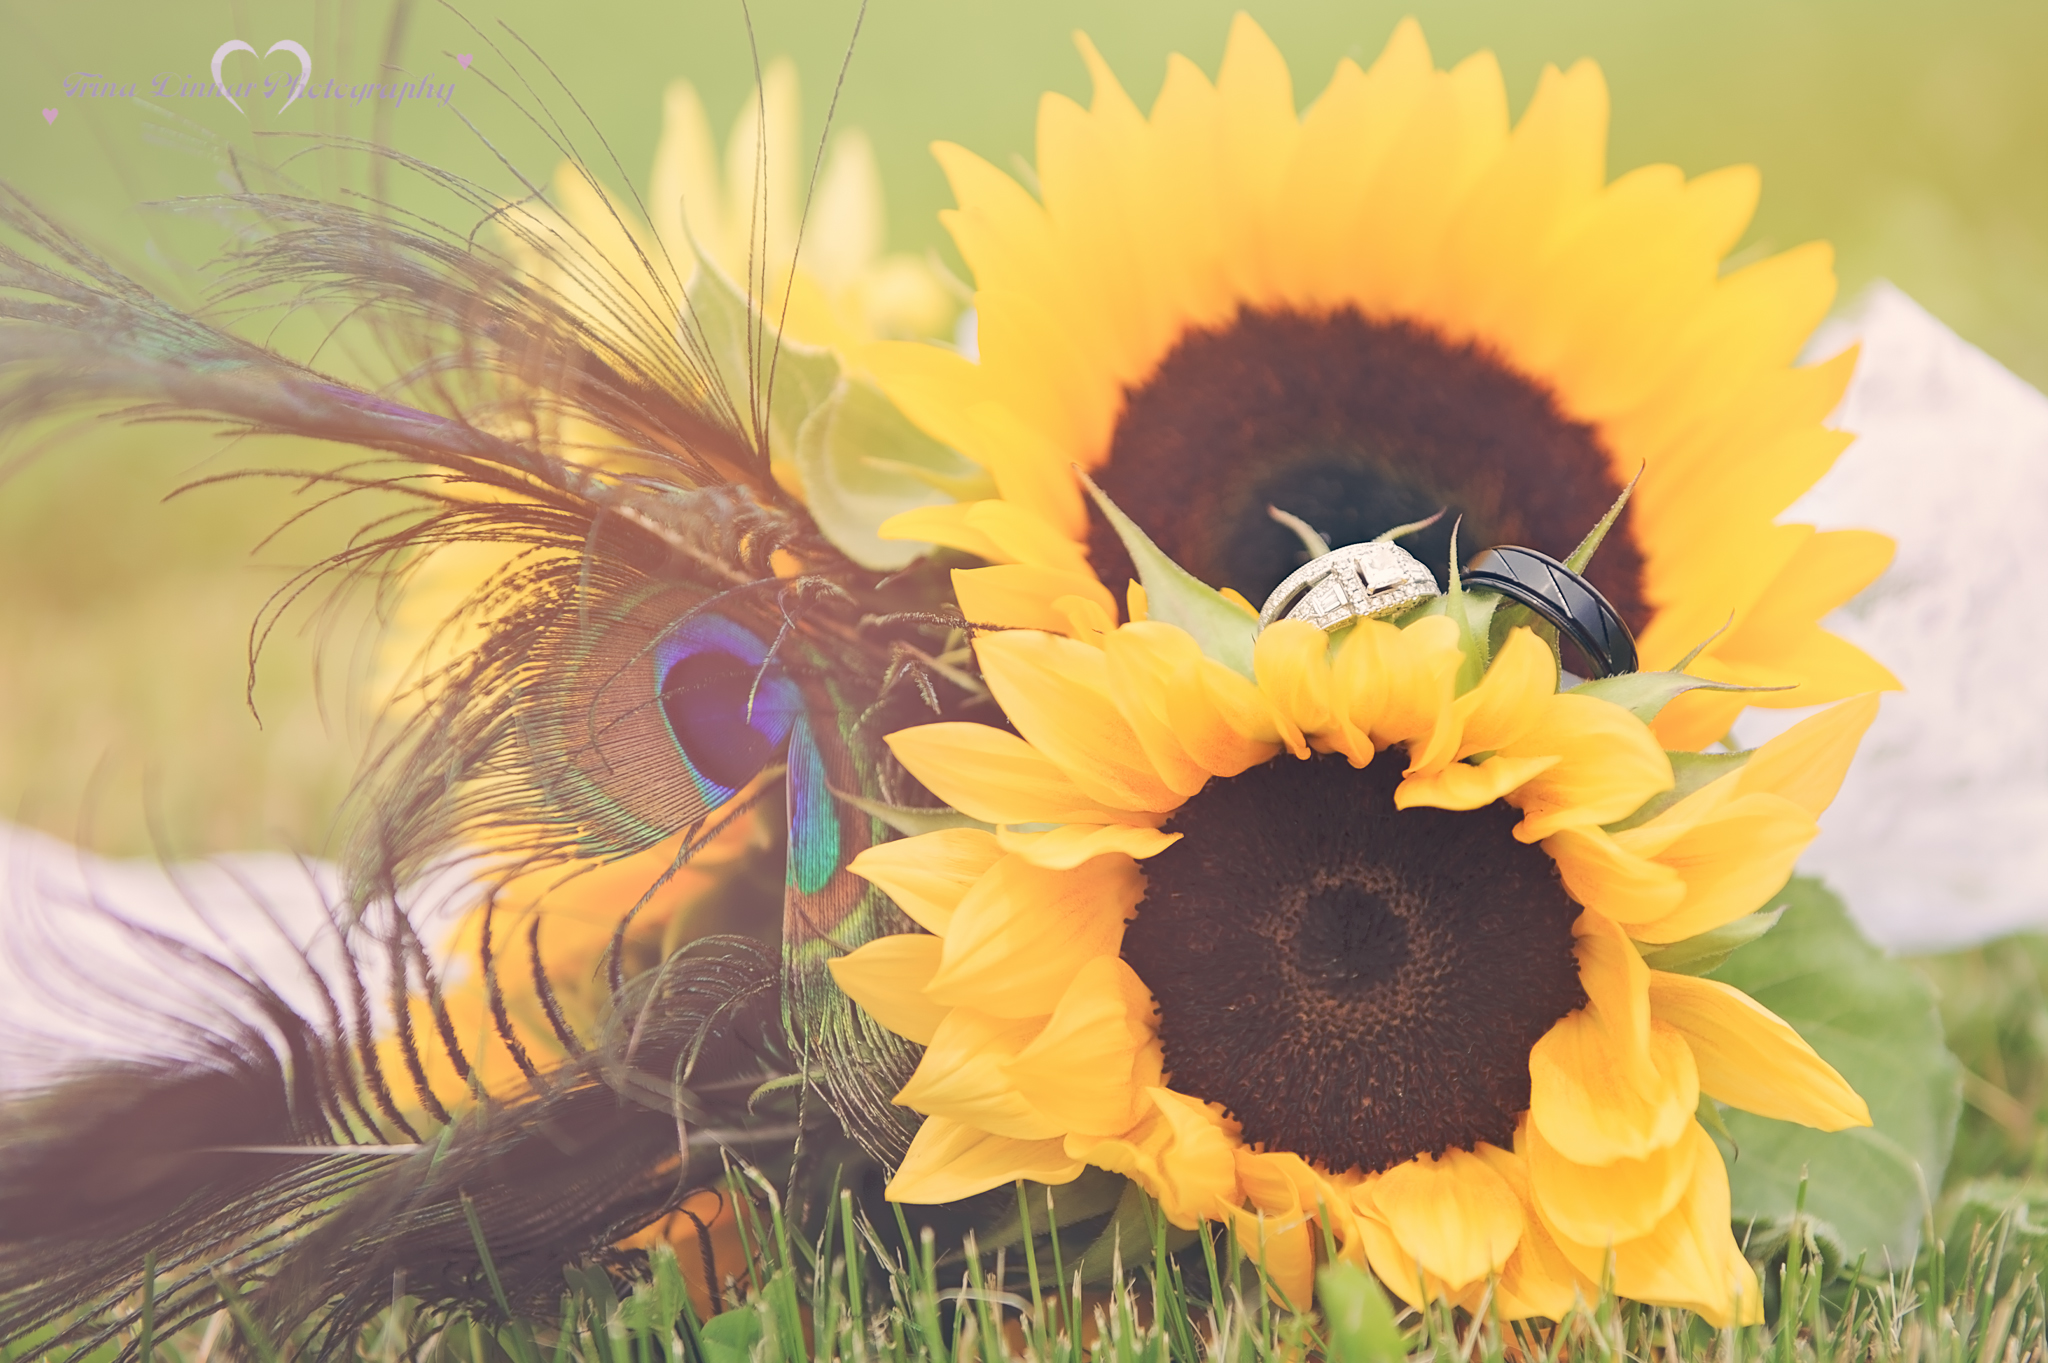 wedding rings in a sunflower bouquet